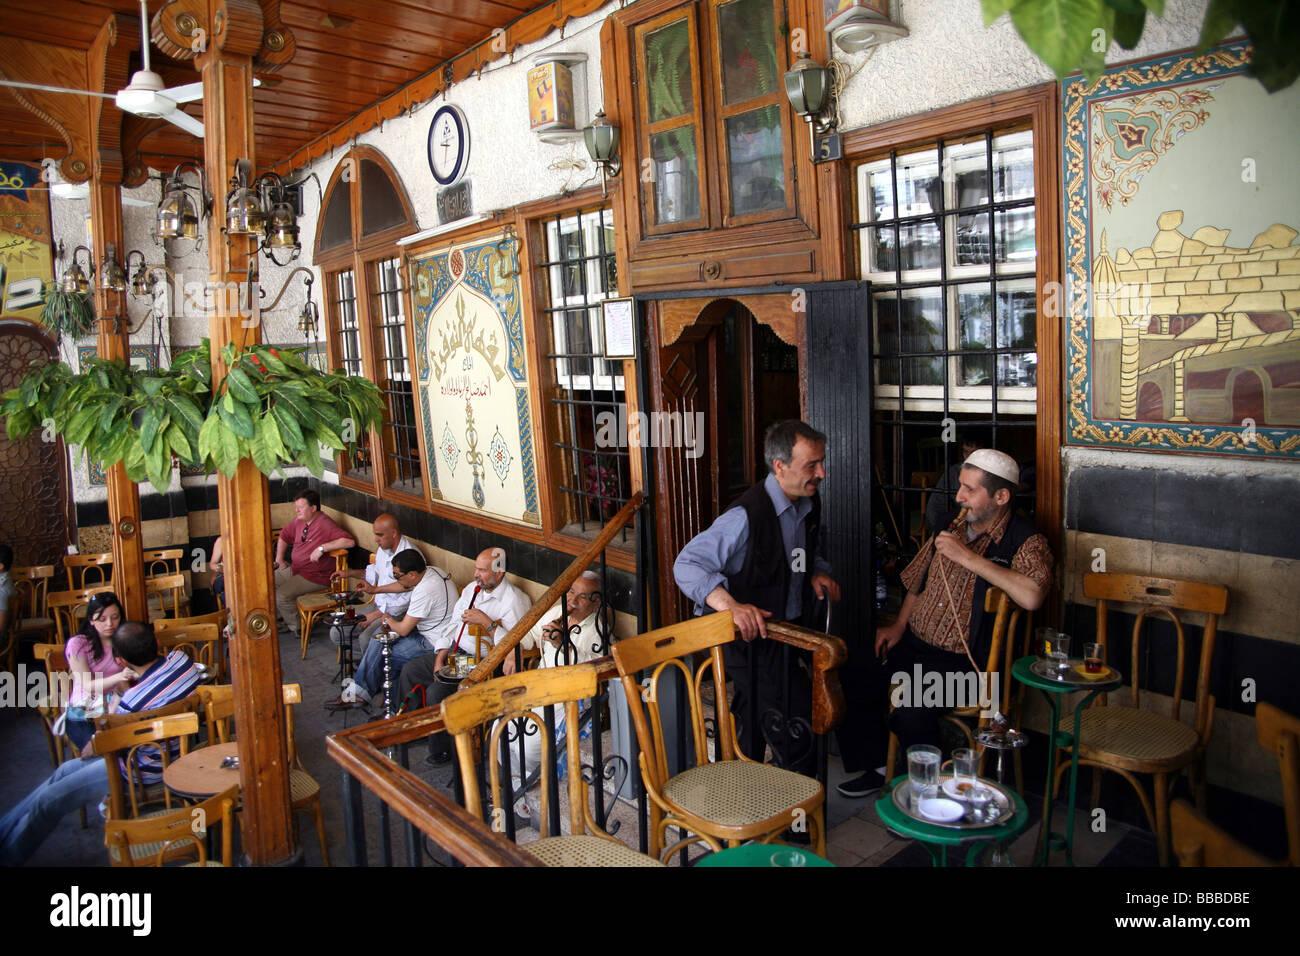 Al Nawfara Cafe Damascus